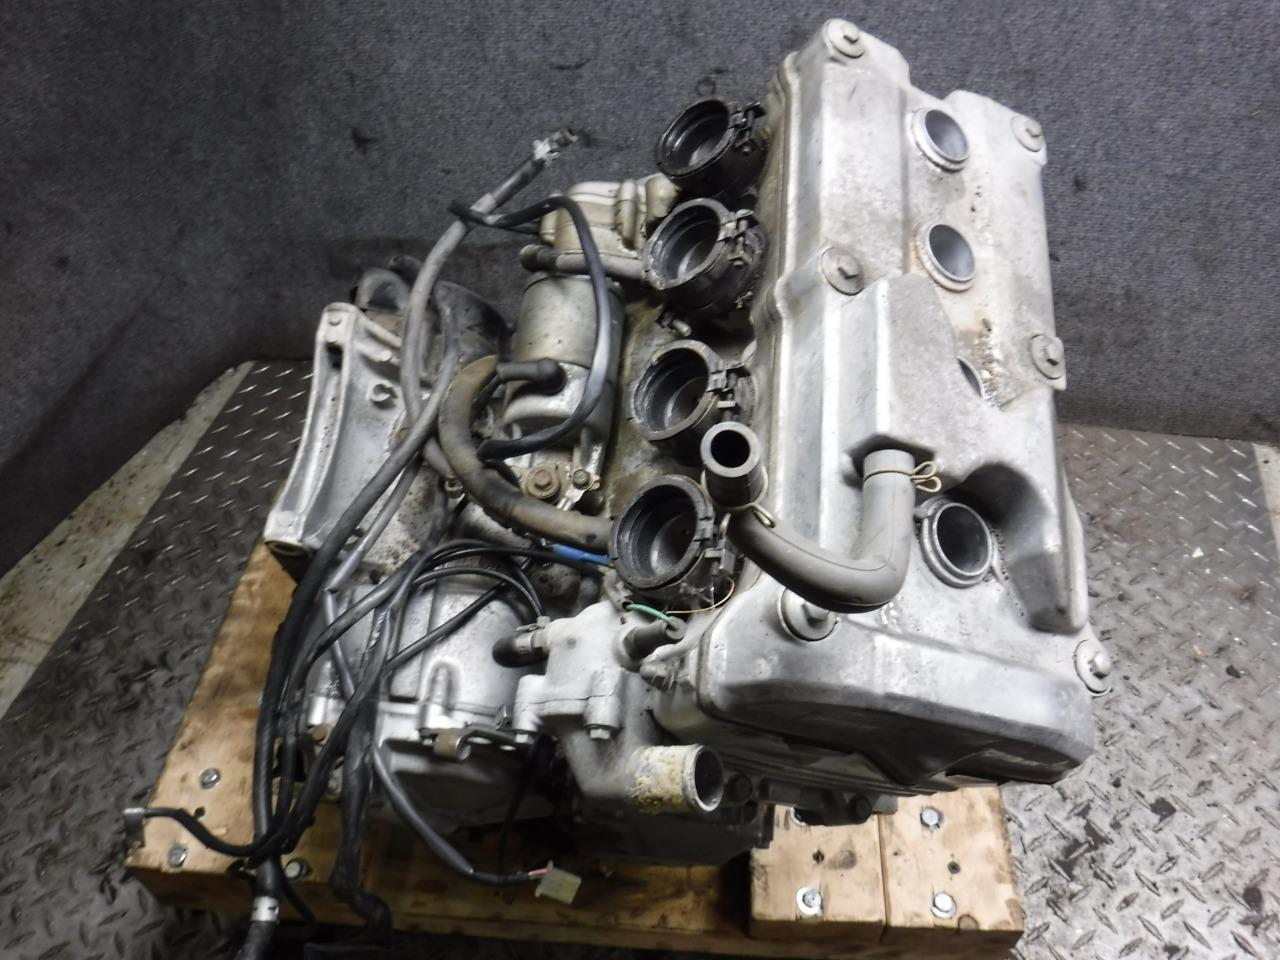 97 honda cbr 600 f3 engine motor 39b ebay. Black Bedroom Furniture Sets. Home Design Ideas